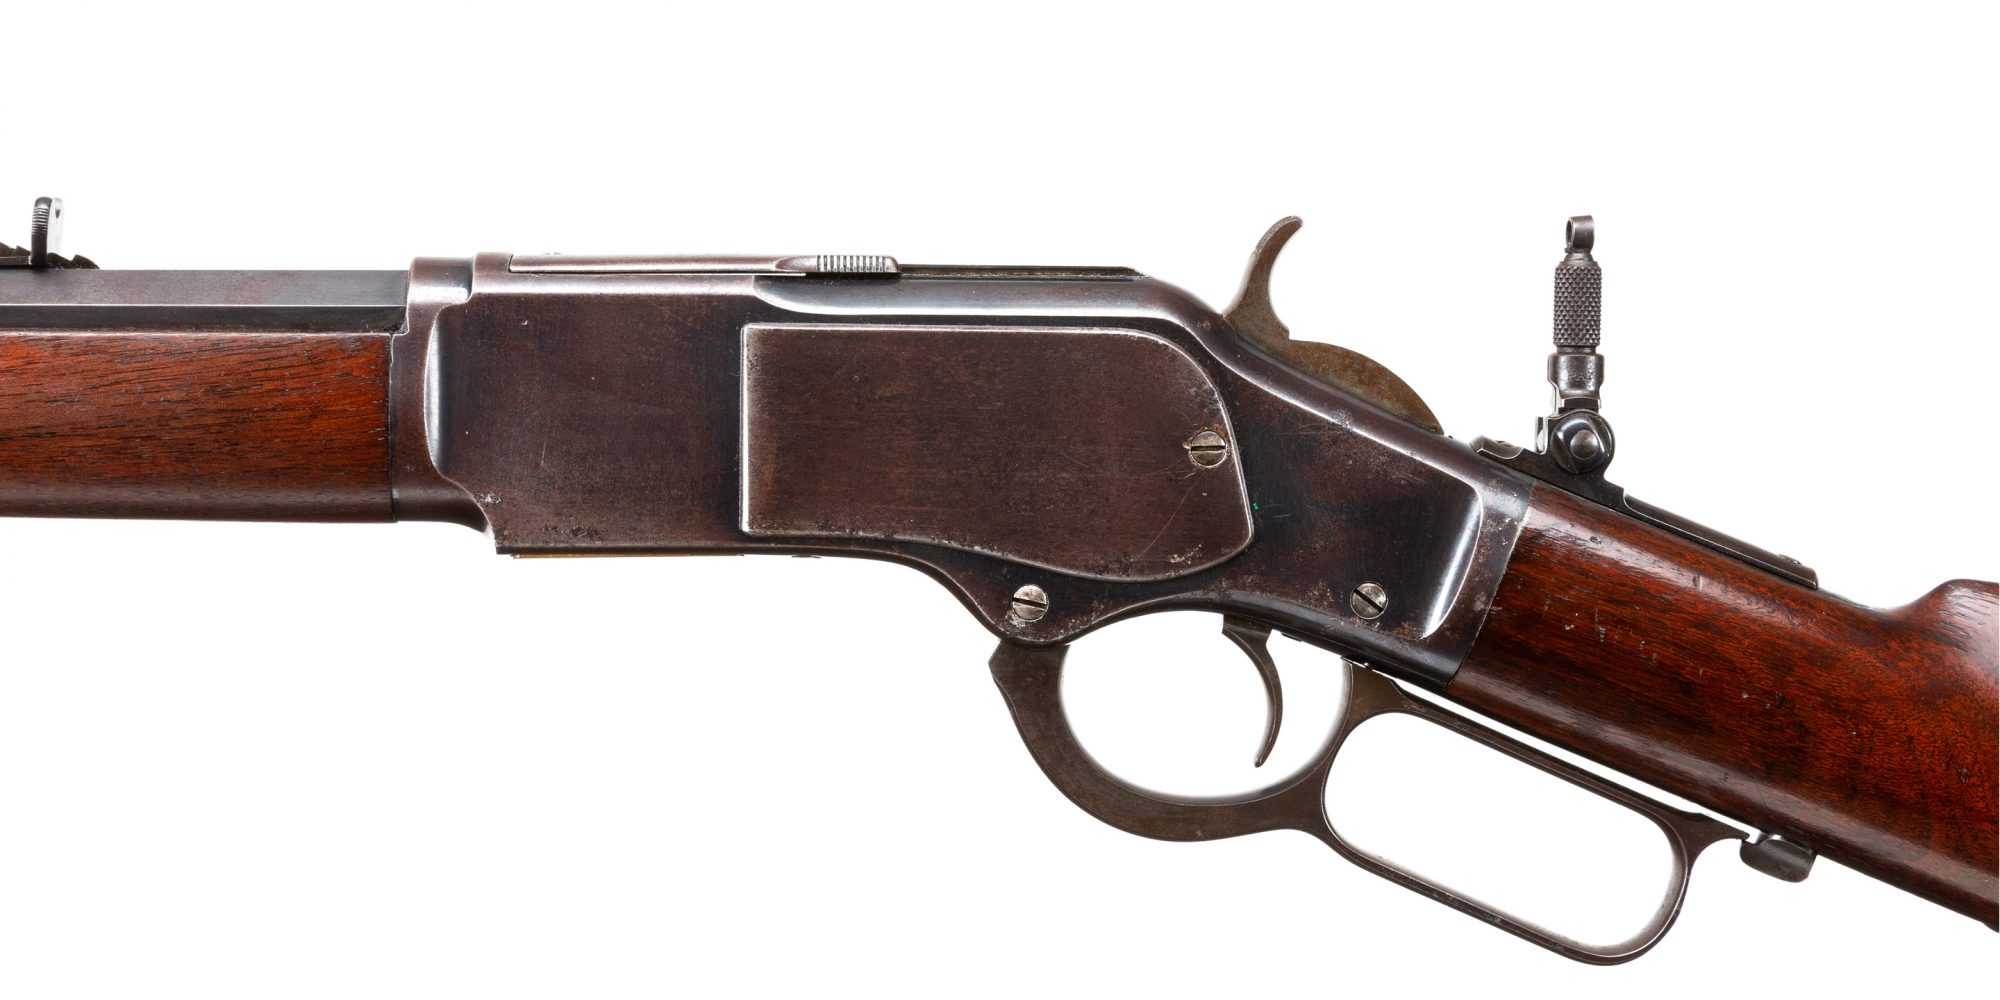 Photo of an antique Winchester Model 1873, for sale through Turnbull Restoration